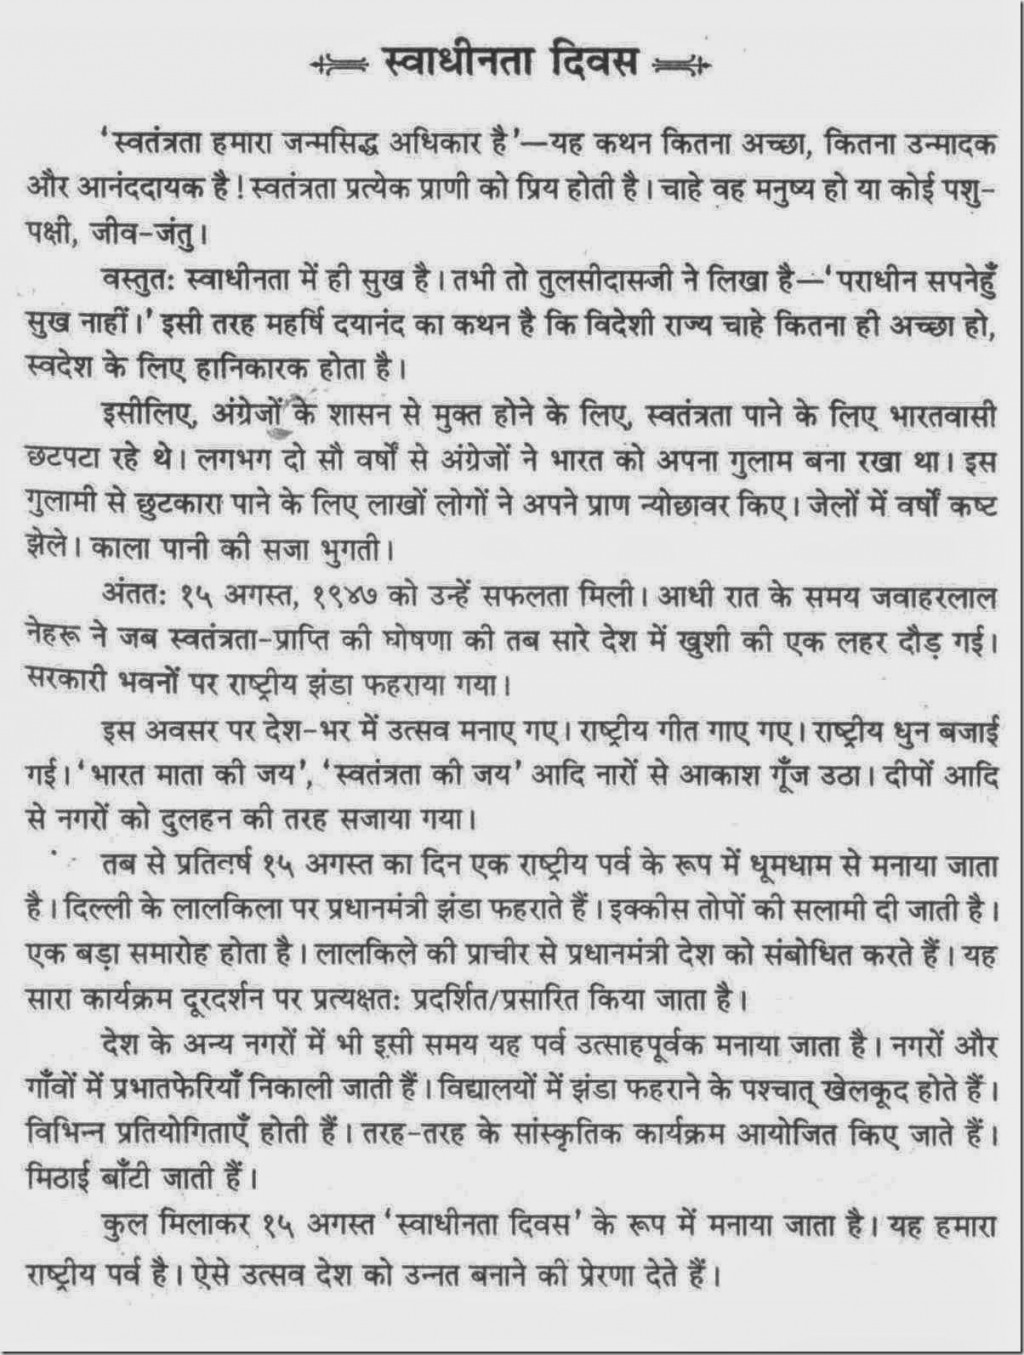 016 My Country Essay In Hindi Phenomenal 10 Lines Is Great Large